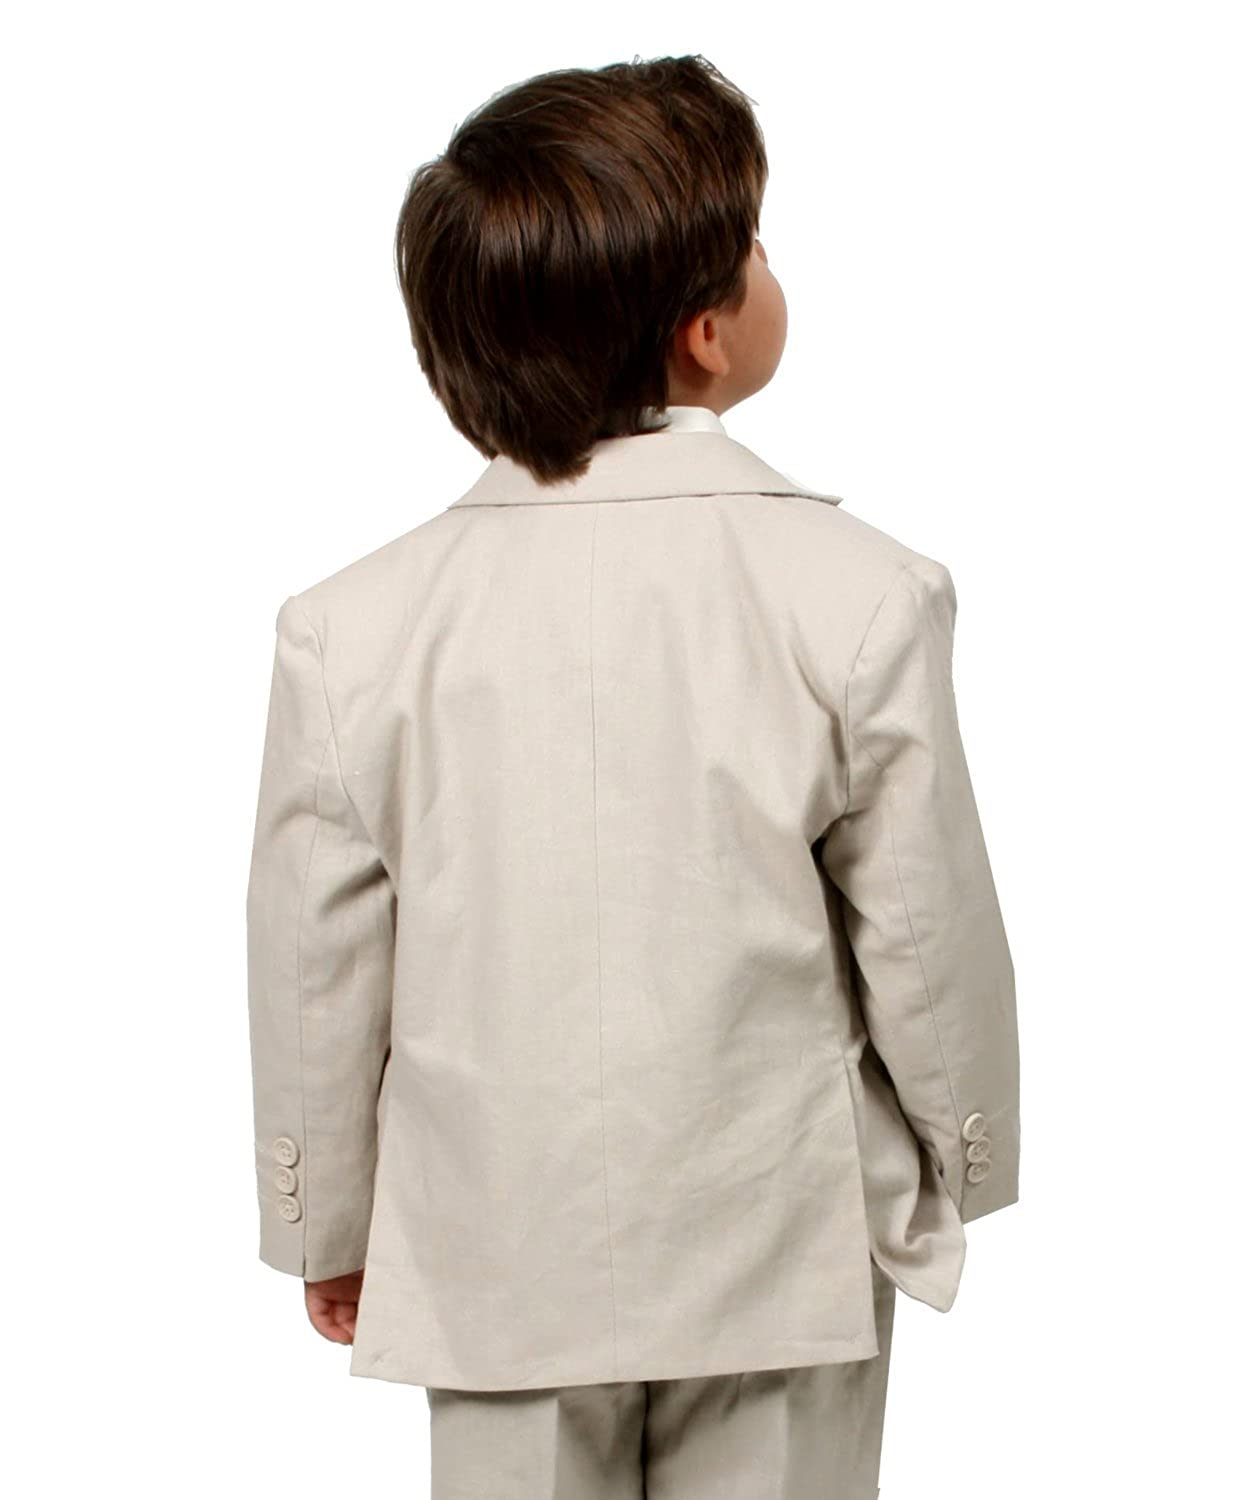 Johnnie Lene Boys Cotton//linen Blend Suit From Baby to Teen